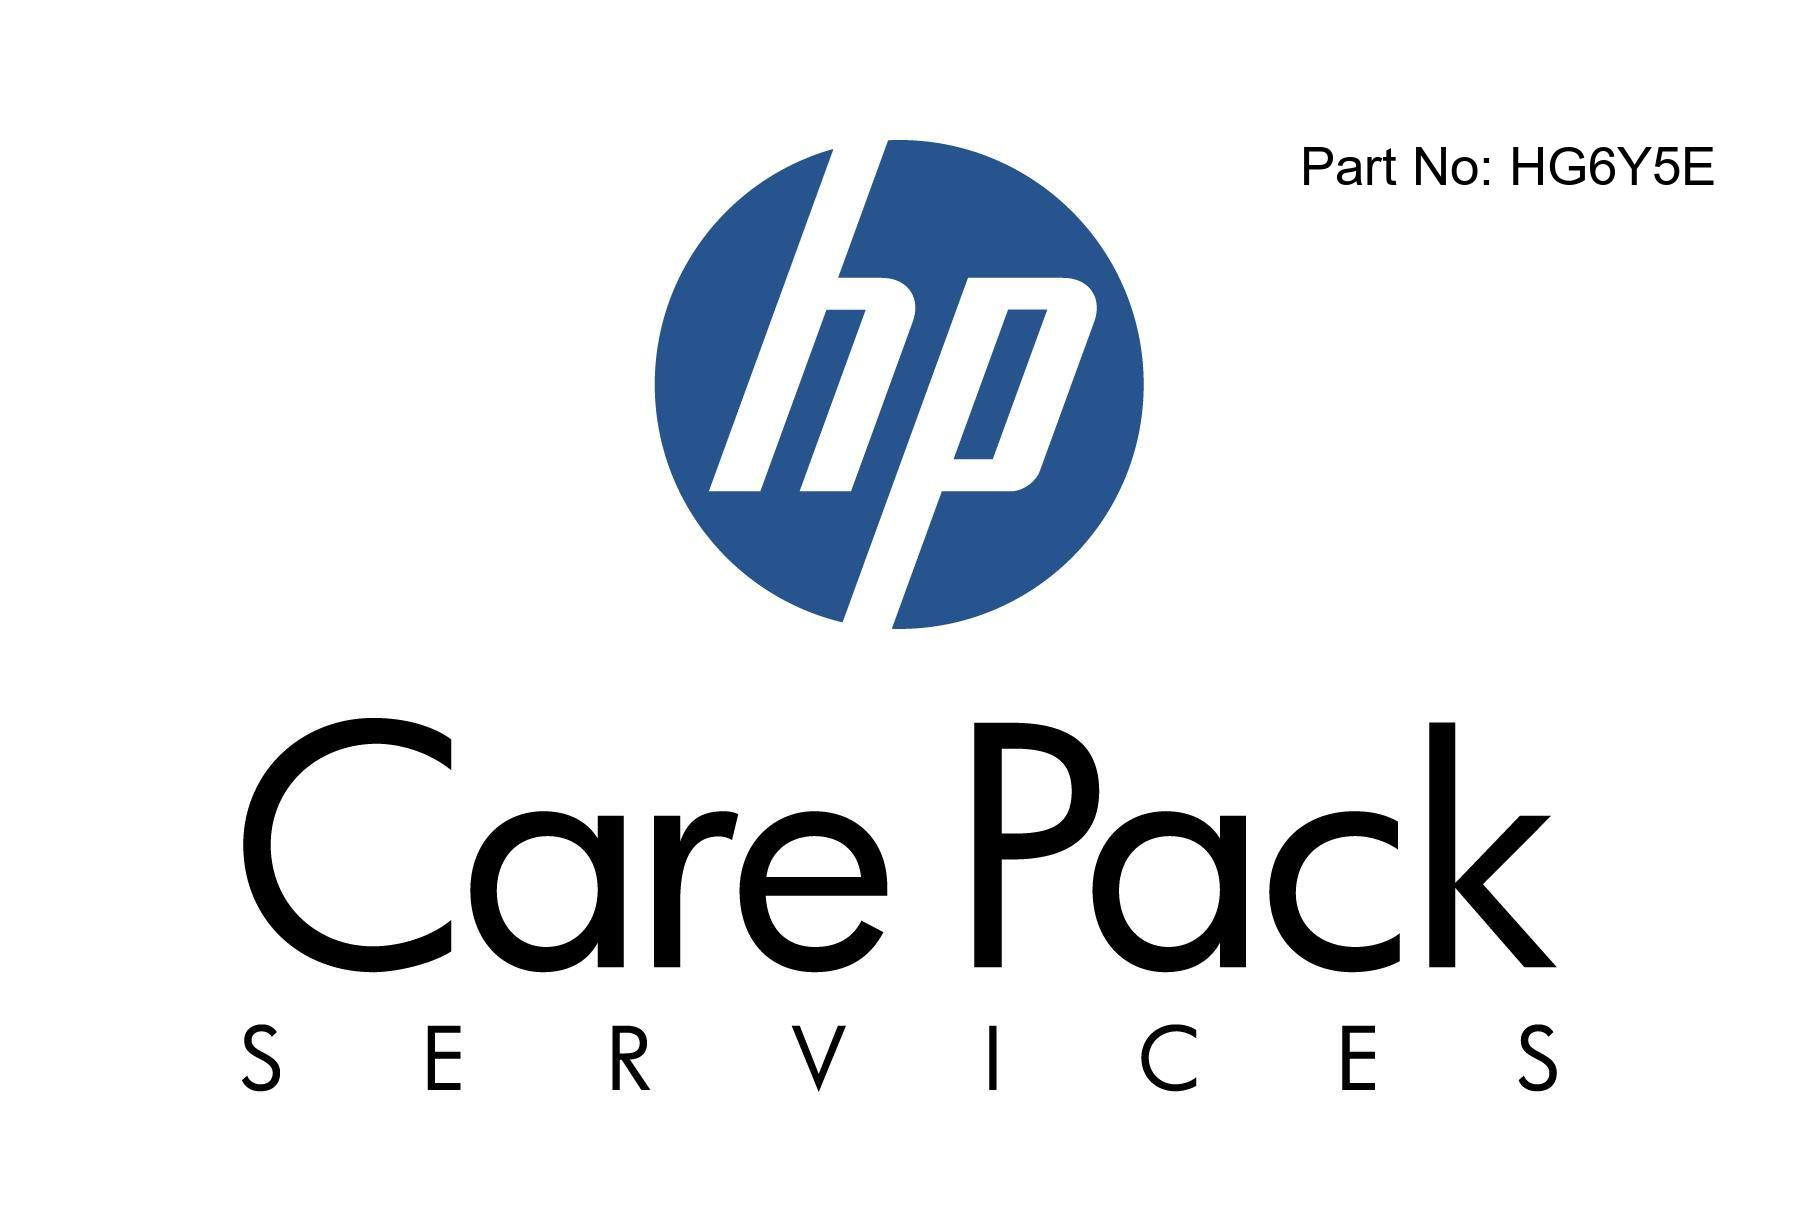 Foundation Care Software Support 24x7 - Technical support - for Microsoft Windows Server 2019 Essentials - phone consulting - 3 years - 24x7 - response time: 2 h - for P/N: P11070-201 P11070-291 P11070-AD1 P11070-B71 P11071-291 P11072-291 P11072-AD1